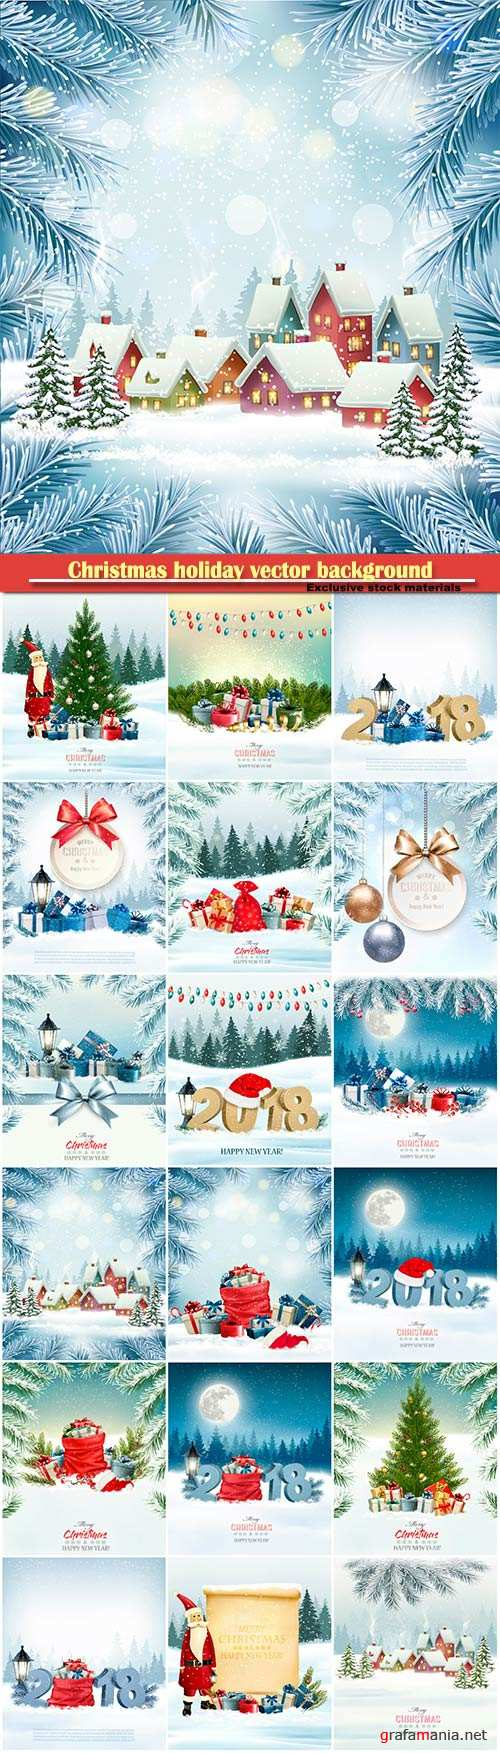 Christmas holiday vector background with 2018 and red Santa hat